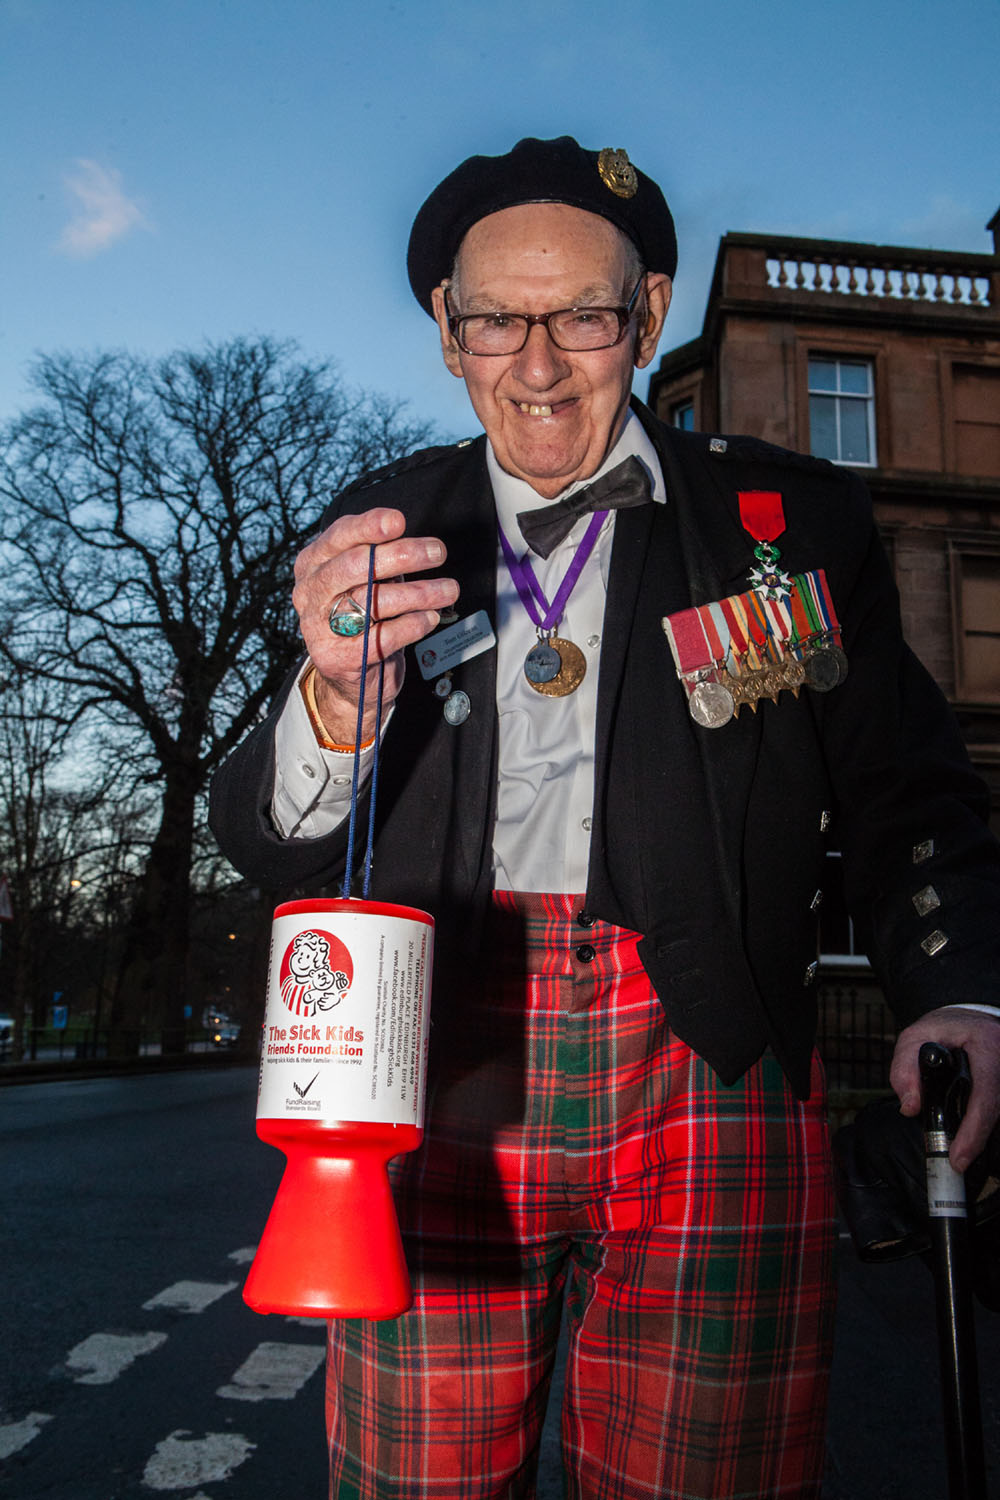 Edinburgh-born war veteran Tom Gilzean (95) has been helping to raise money on the streets of Edinburgh for The Sick Kids Friends Foundation for 33 years. And now needs help to repair his wheelchair so he can continue his charity work. IN PIC (LtoR) Tom Gilzean